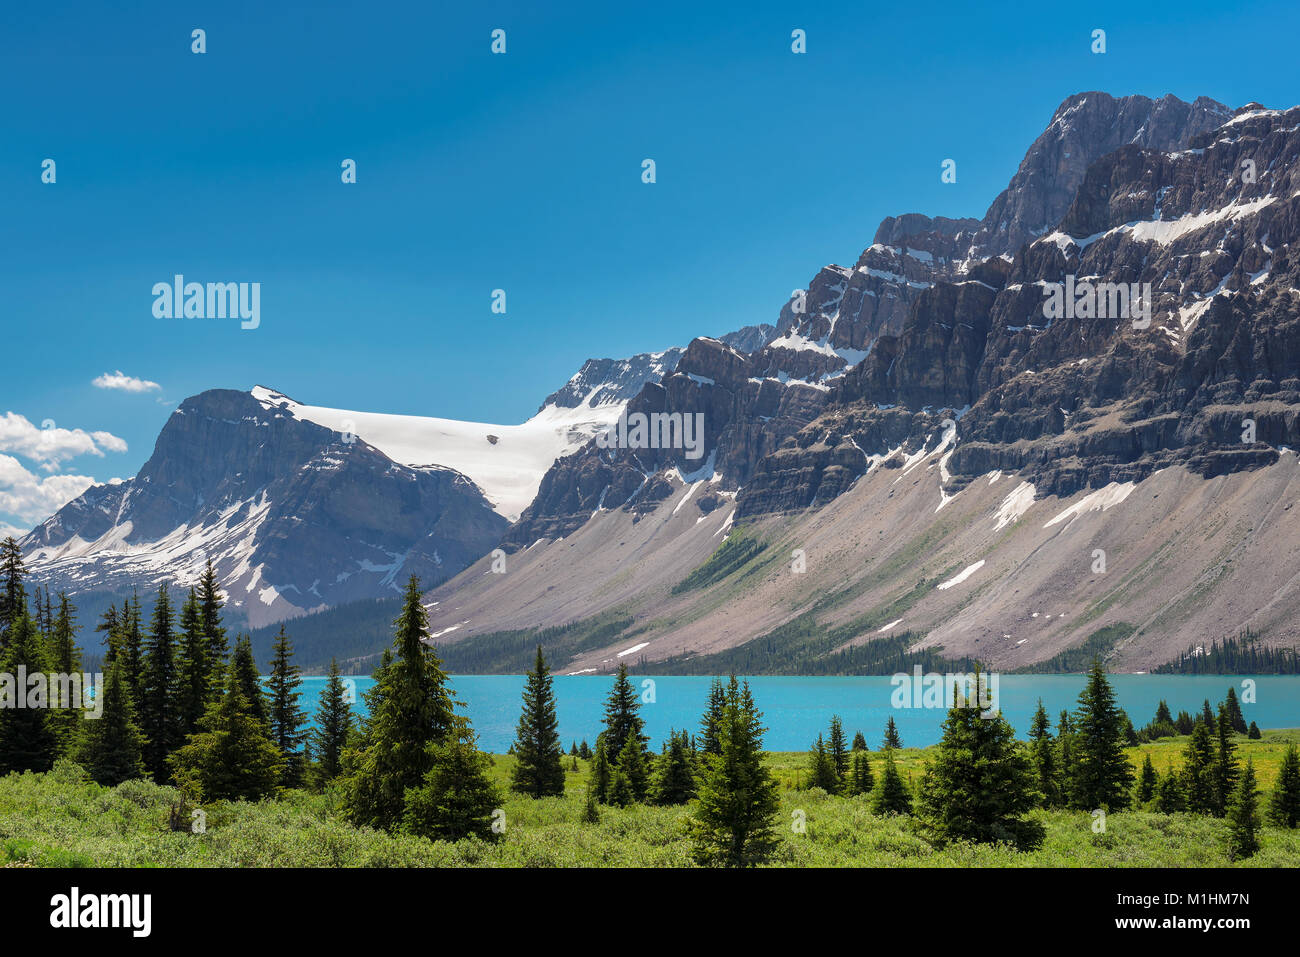 Canadian Rockies - Stock Image